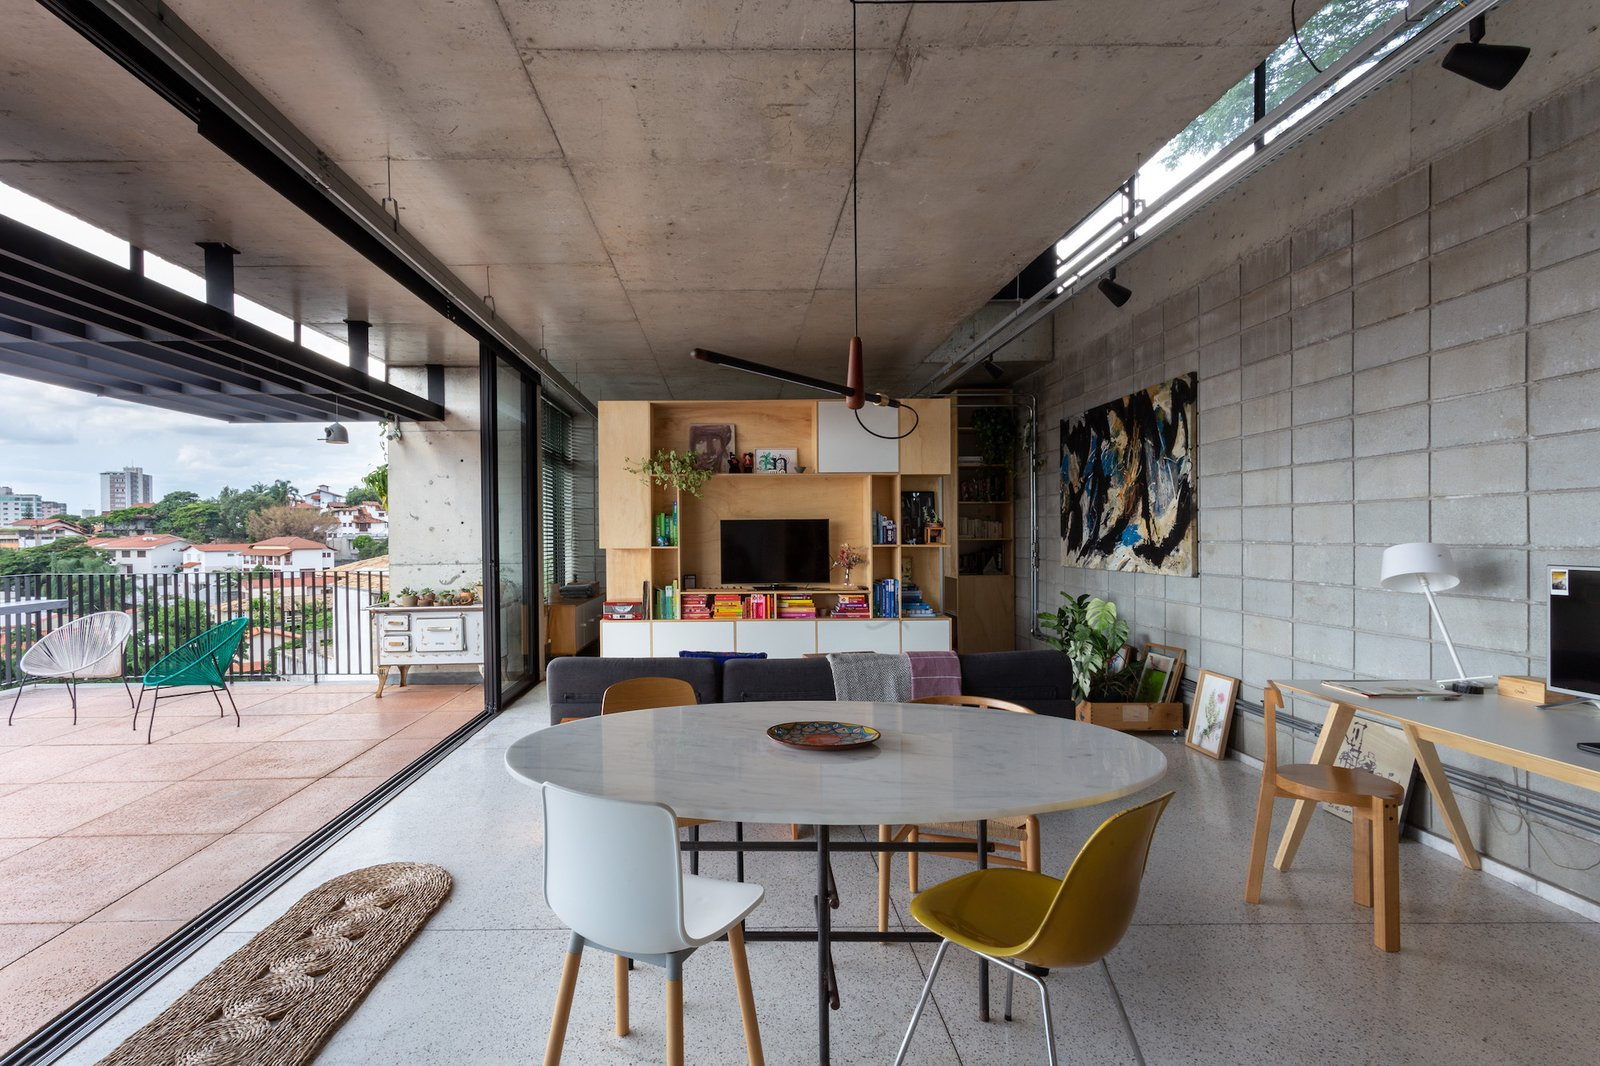 Casa Comiteco by Marcos Franchini and Nattalia Bom Conselho living room